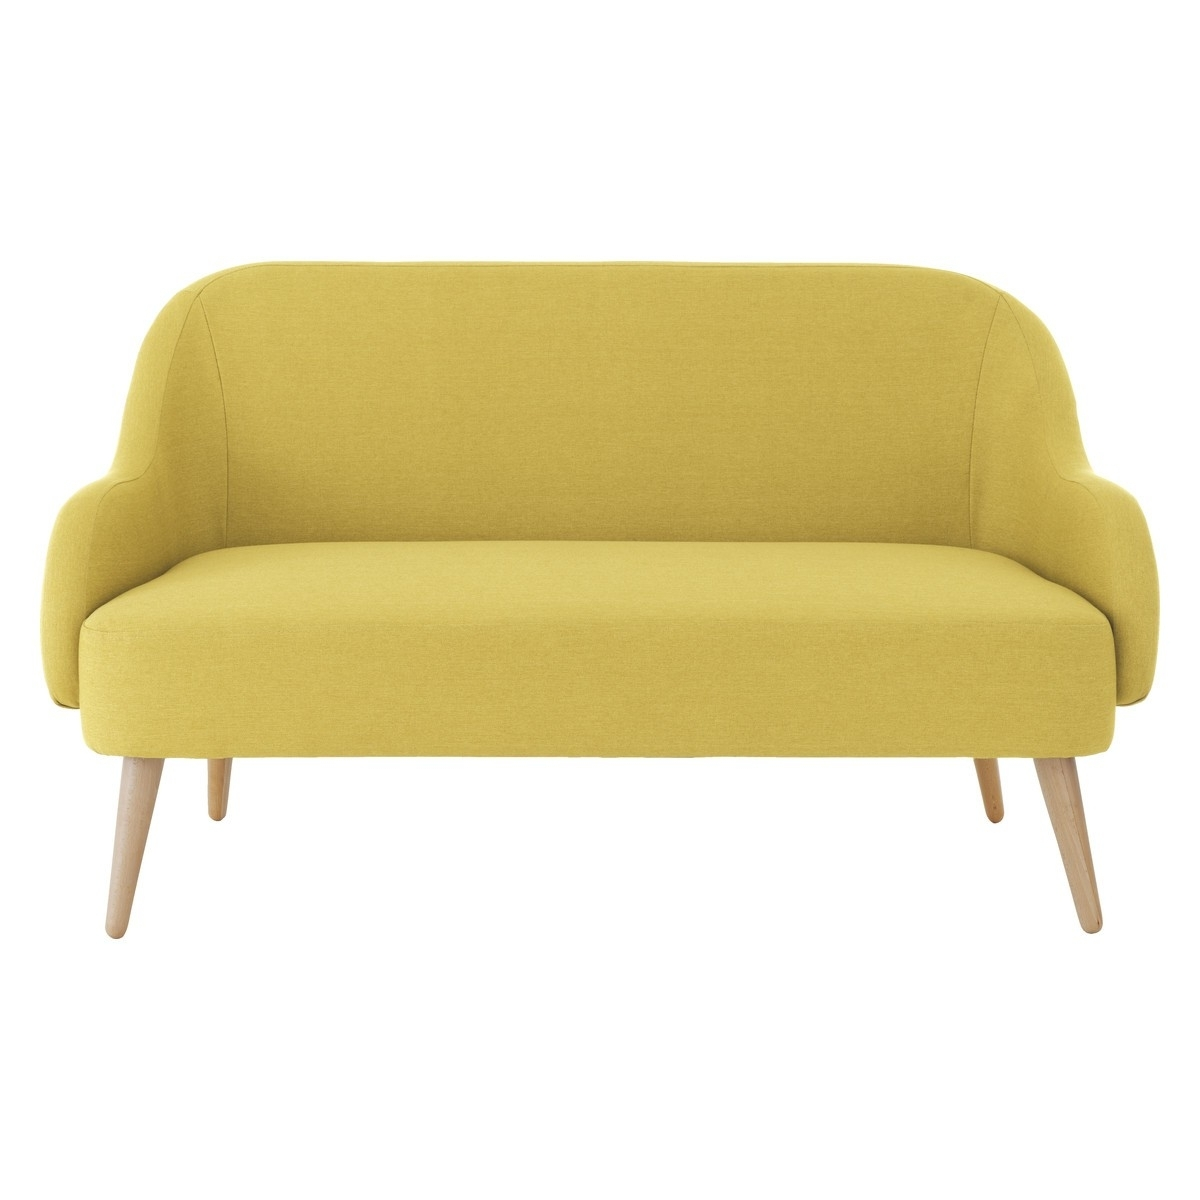 Yellow Fabric, Sofa Inside Popular Small 2 Seater Sofas (View 20 of 20)